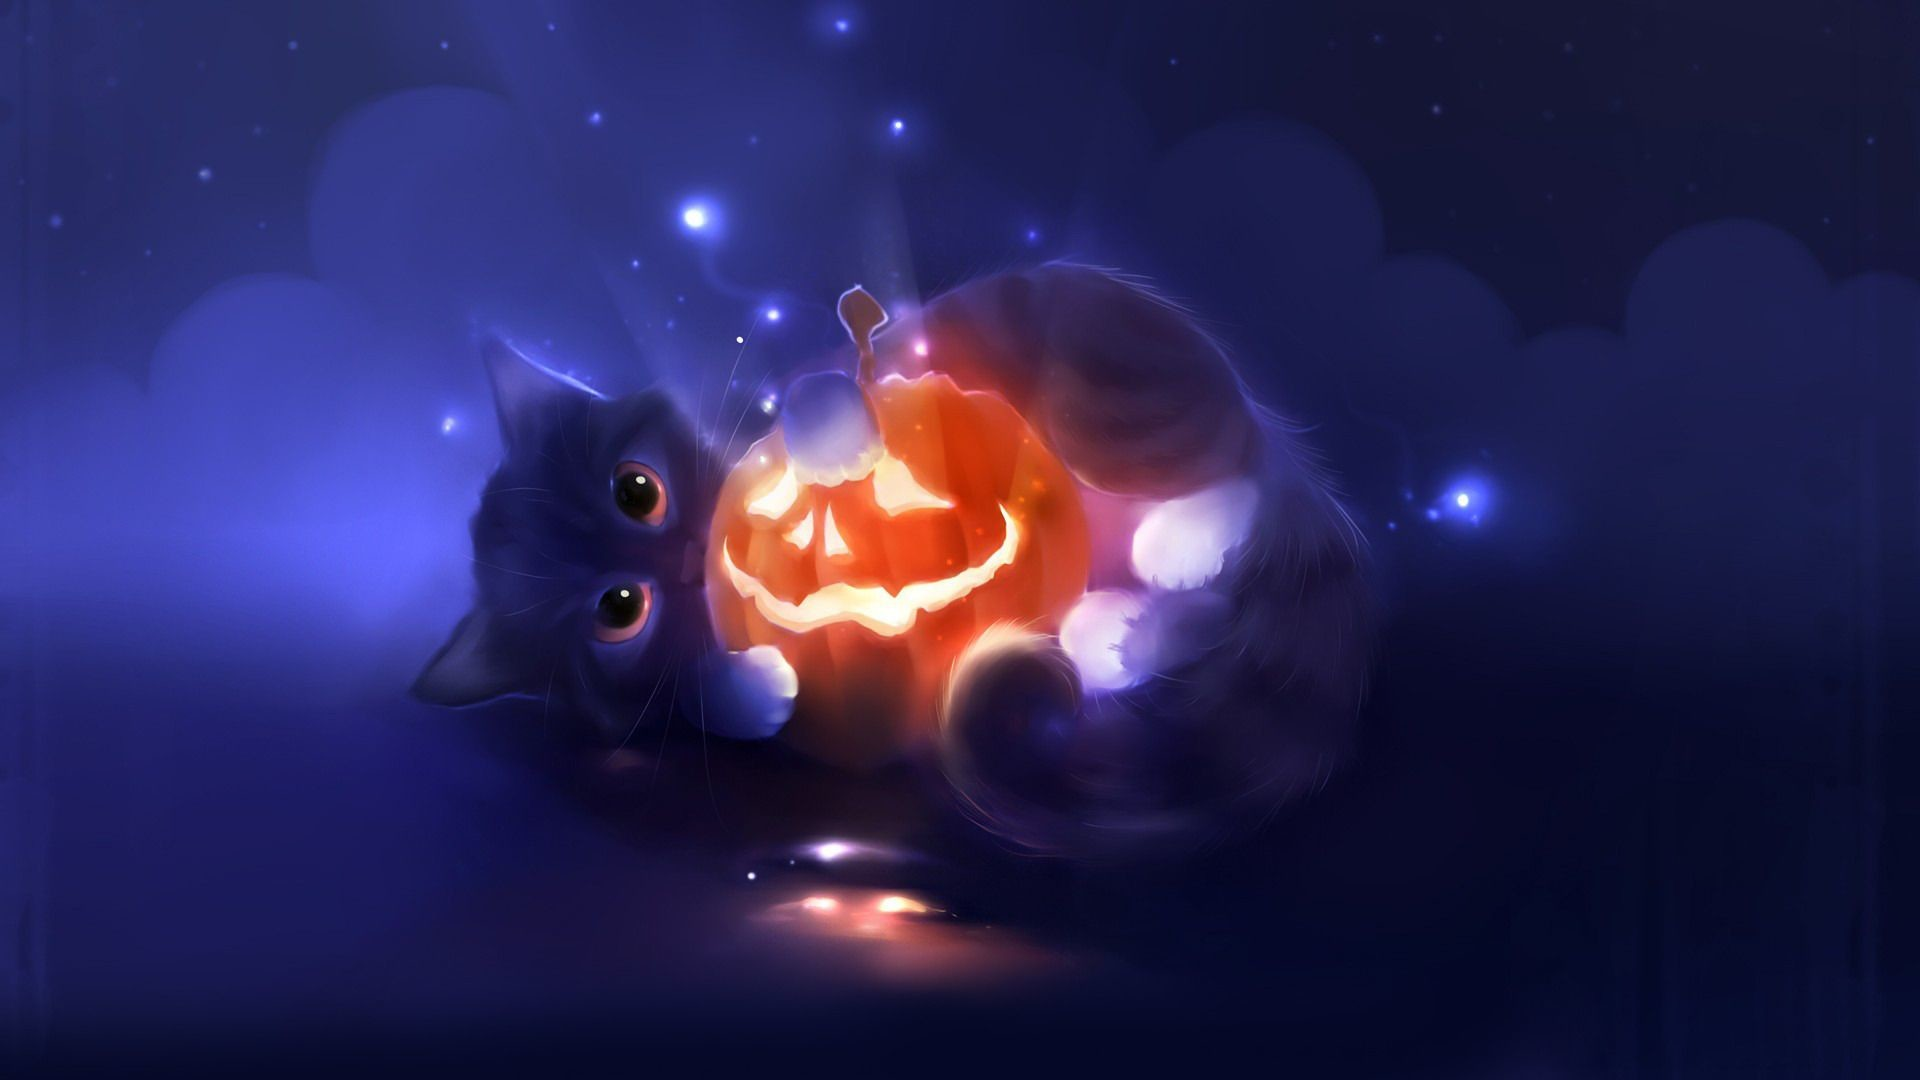 Res: 1920x1080, Cute Cat Playing With Pumpkin (id: